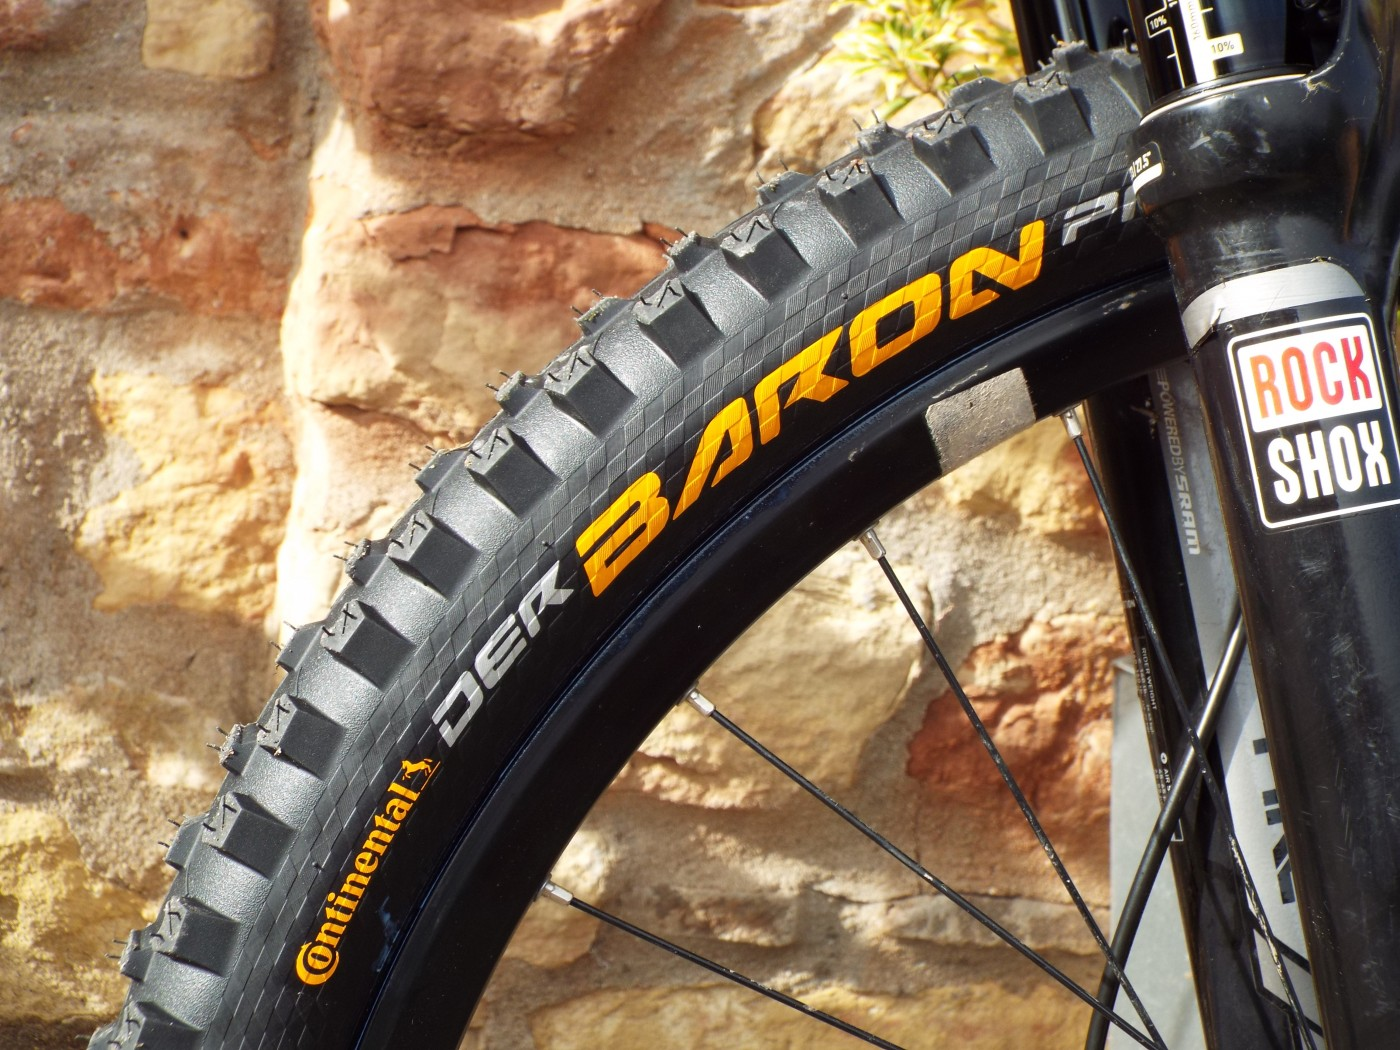 c1ede1c6d60 Tested - Conti Tyres Der Baron Projekt 2.4 review